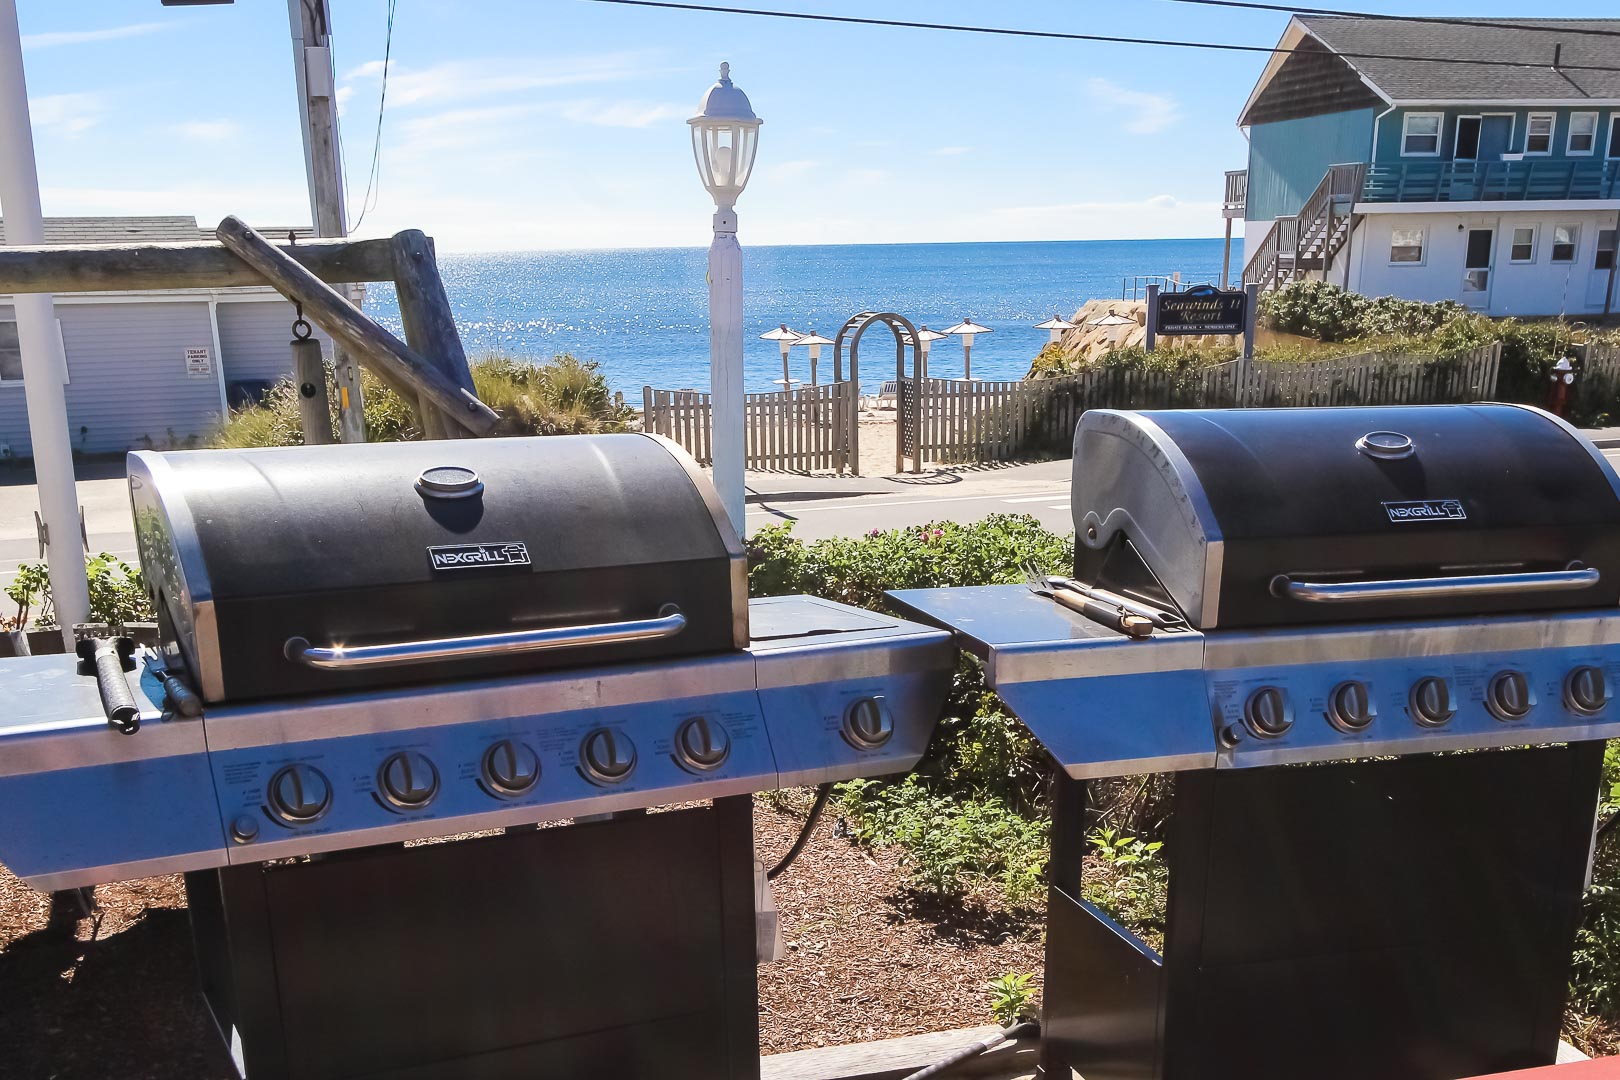 Large BBQ grills available for the family to enjoy at VRI's Seawinds II Resort in Massachusetts.